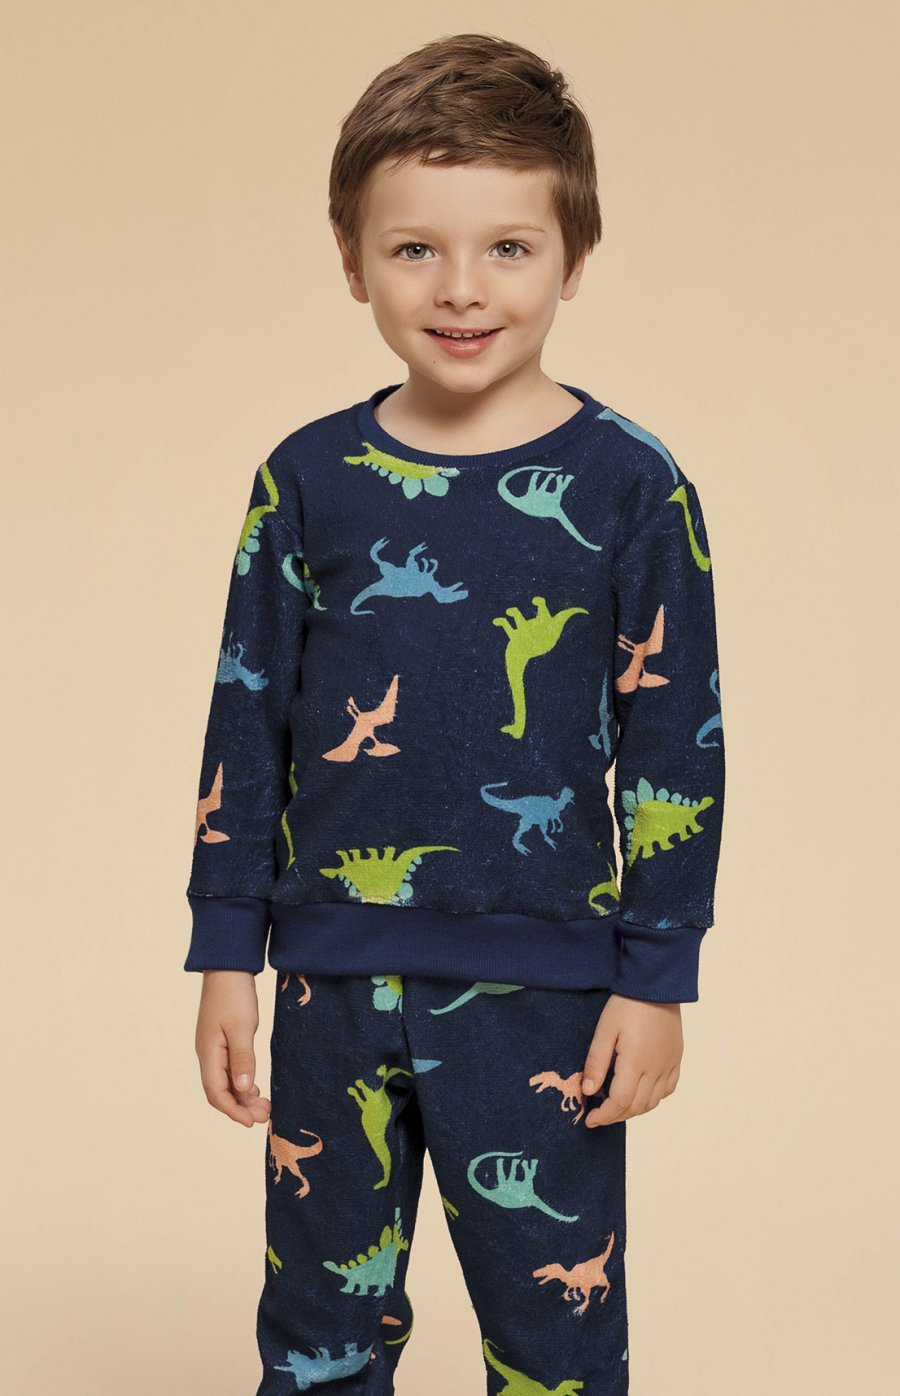 Pijama Baby Soft Dino Inverno 2019 CLOUD CLUB